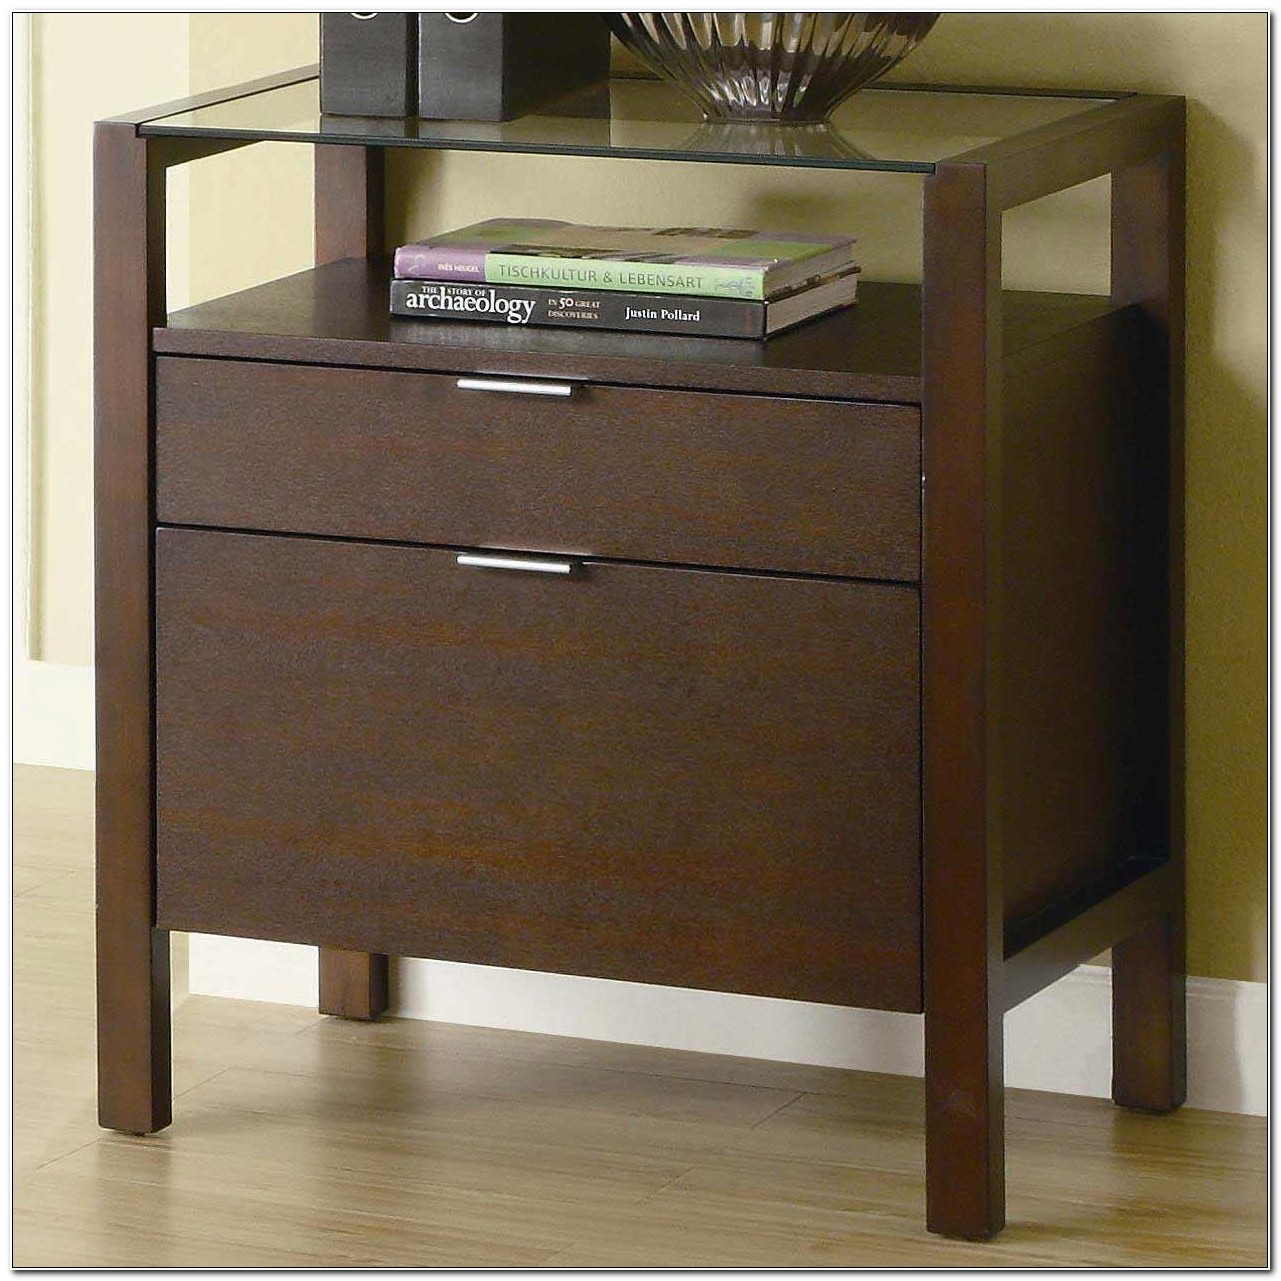 Officemax Filing Cabinets Wood